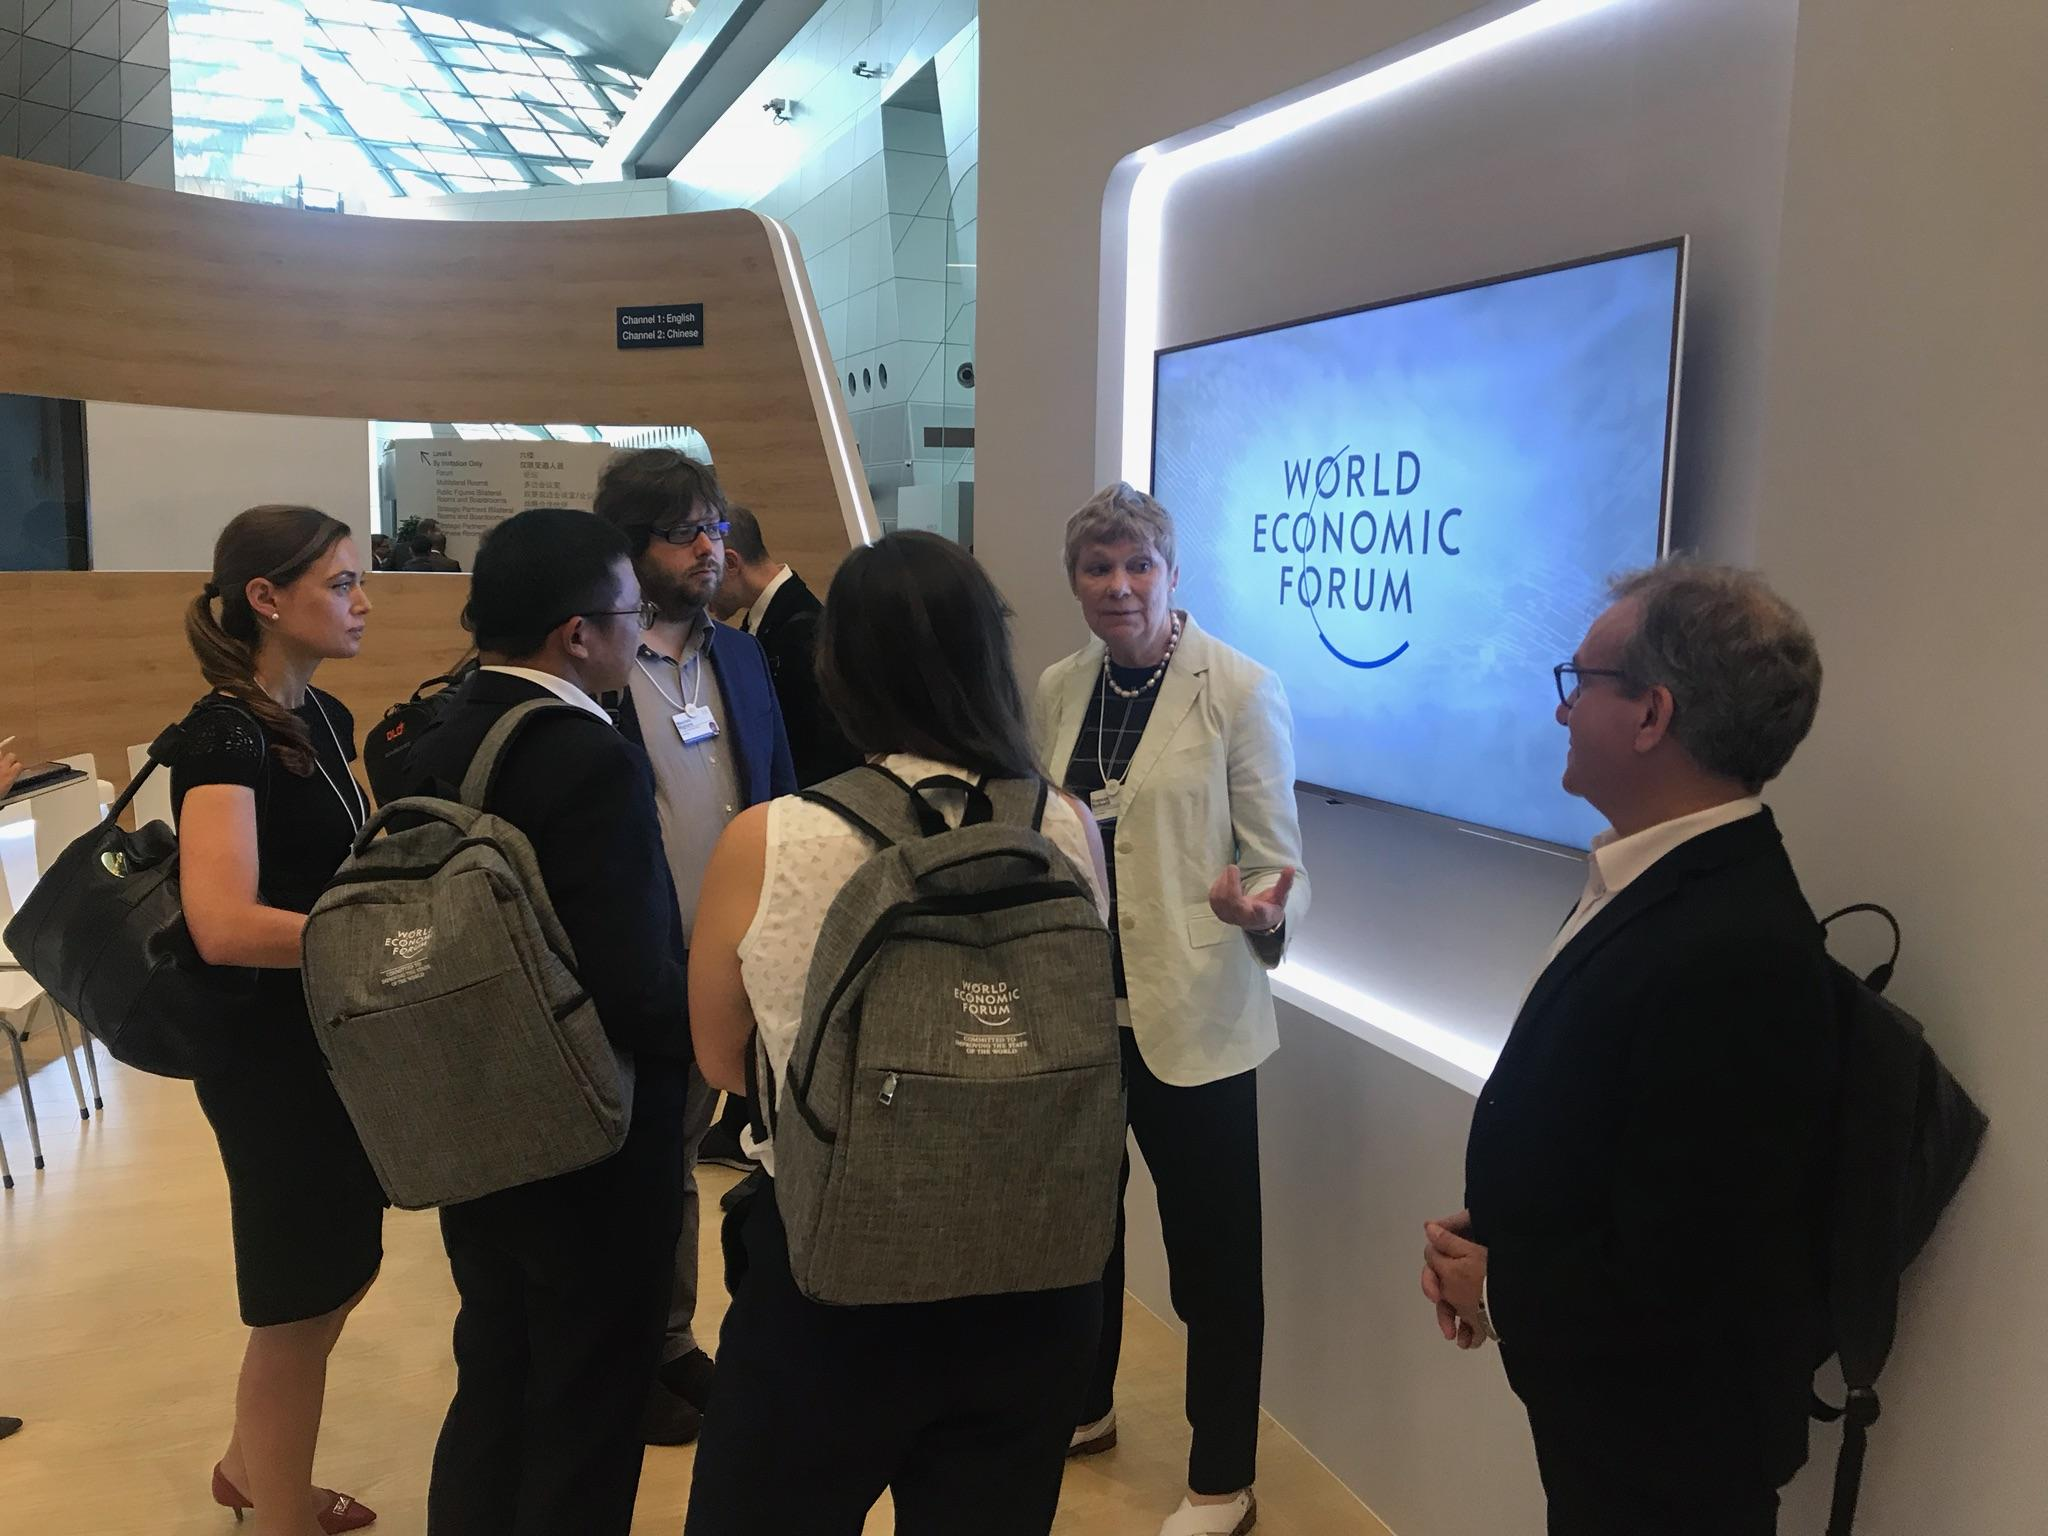 Prof Balkwill speaking to guests at World Economic Forum.